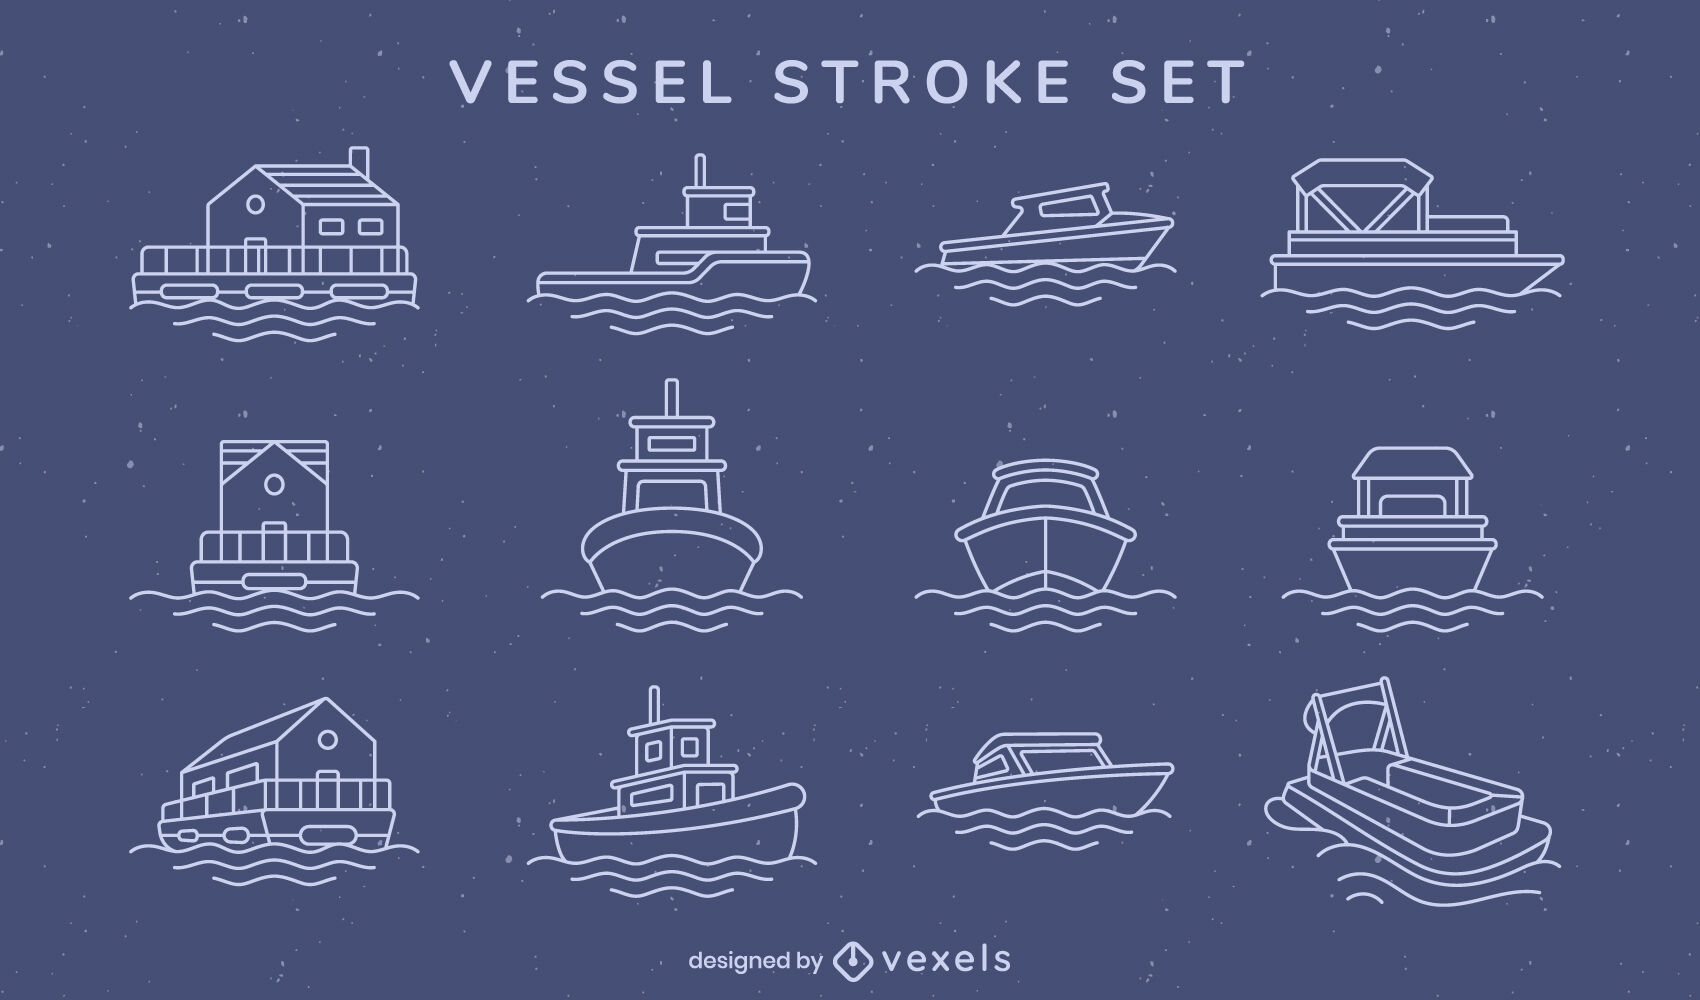 Set of boats and vessels stroke